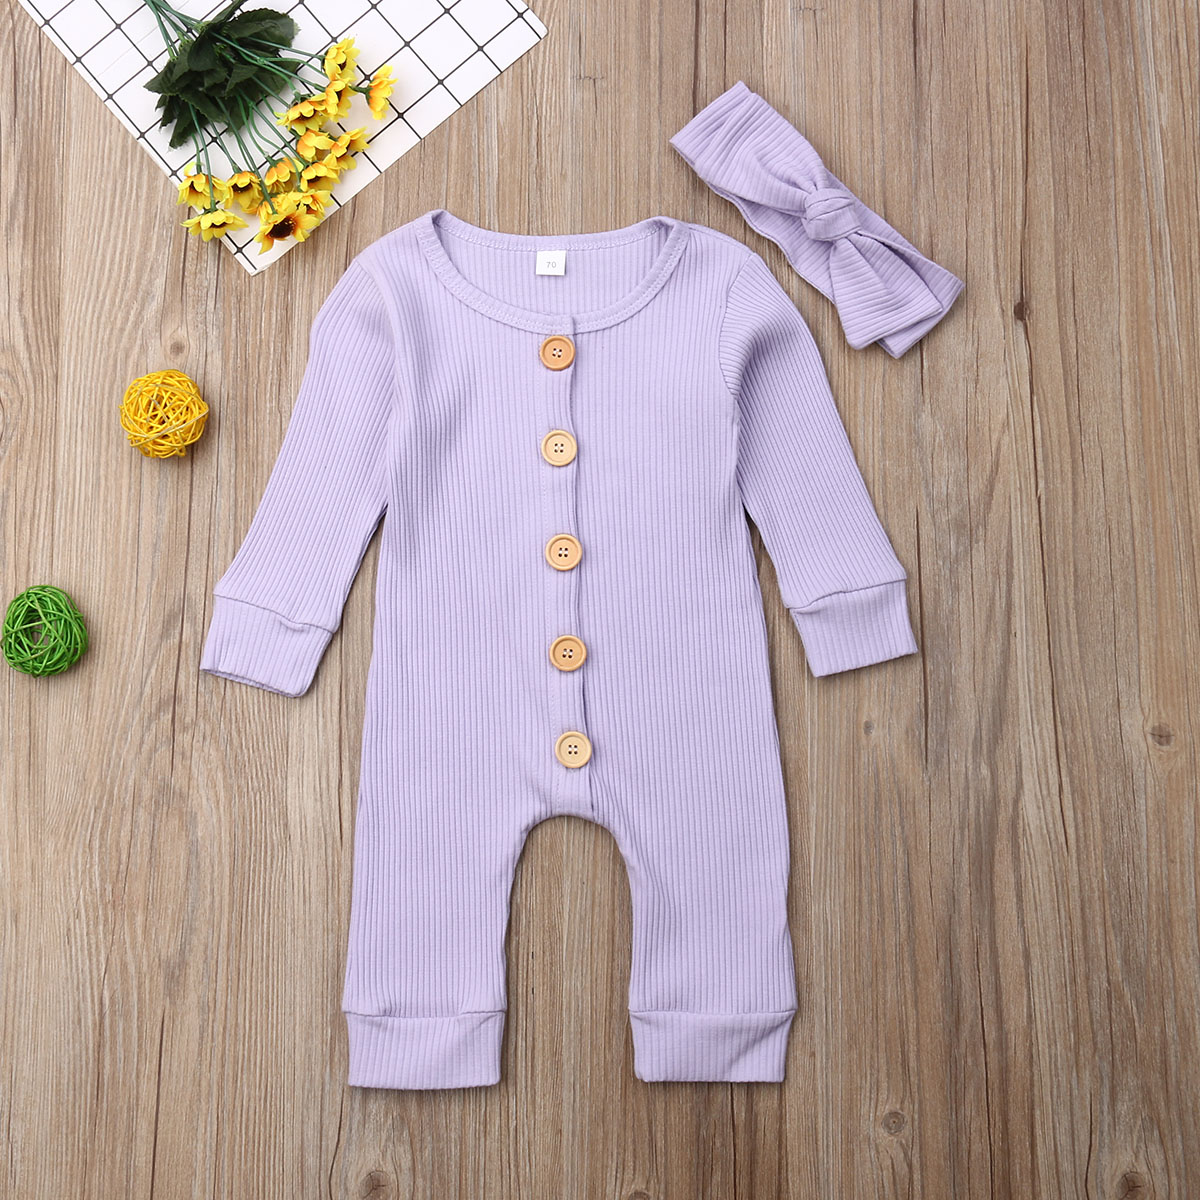 H1d2e8f2c4e154e1f9dbf2ced5e86850cr Spring Fall Newborn Baby Girl Boy Clothes Long Sleeve Knitted Romper + Headband Jumpsuit 2PCS Outfit 0-24M